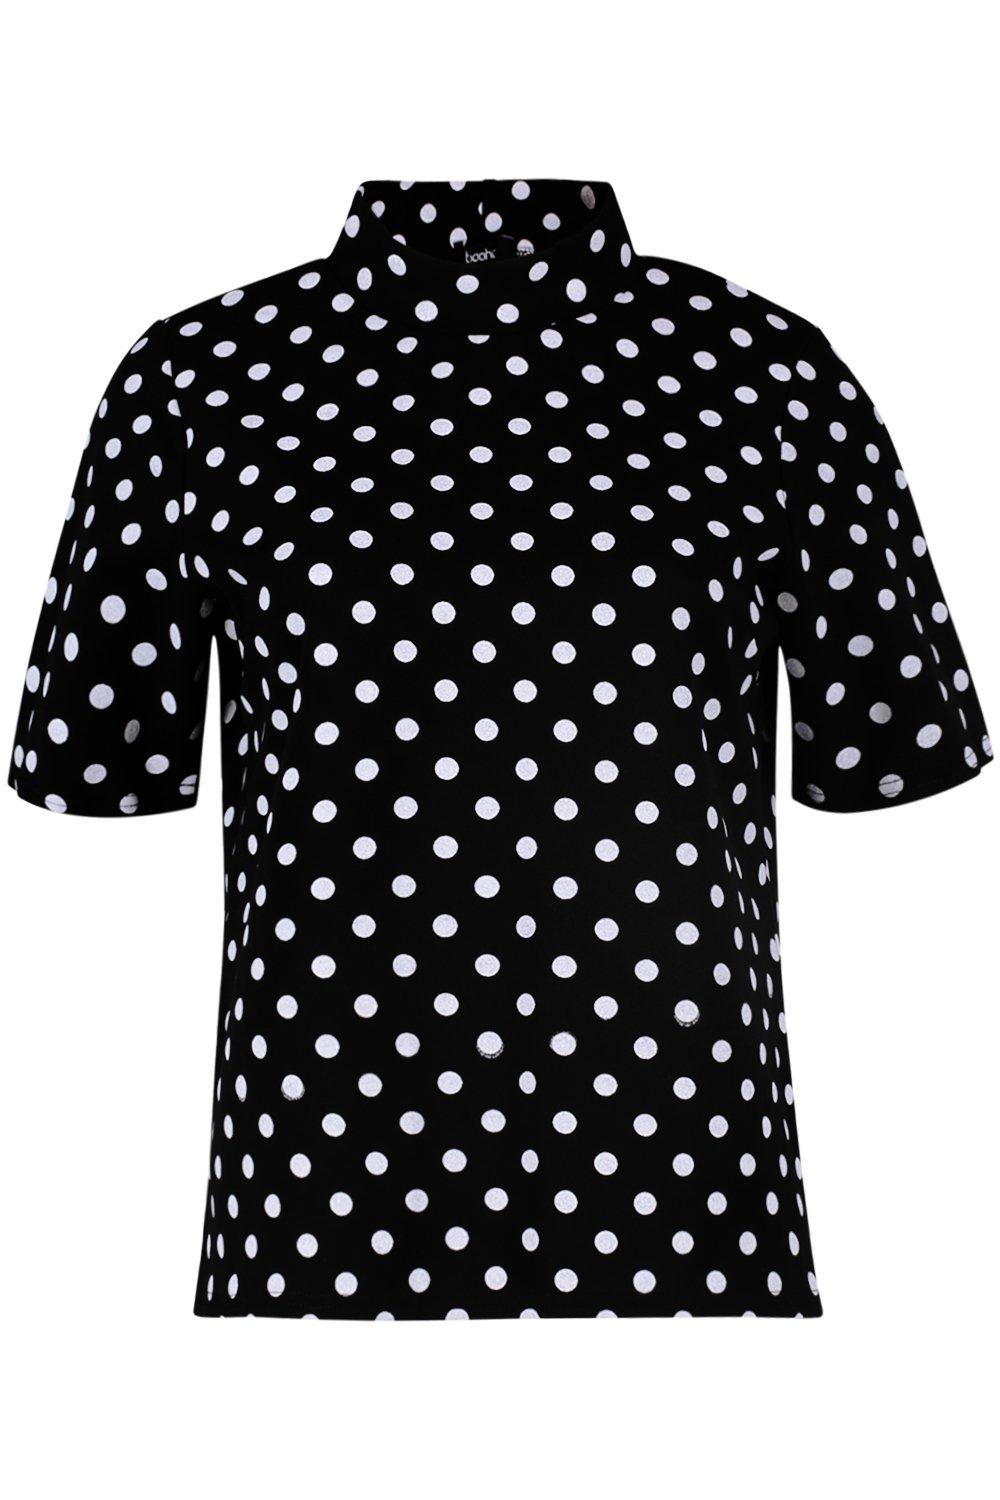 black Neck Top Polka High Dot WBZgqxf8x